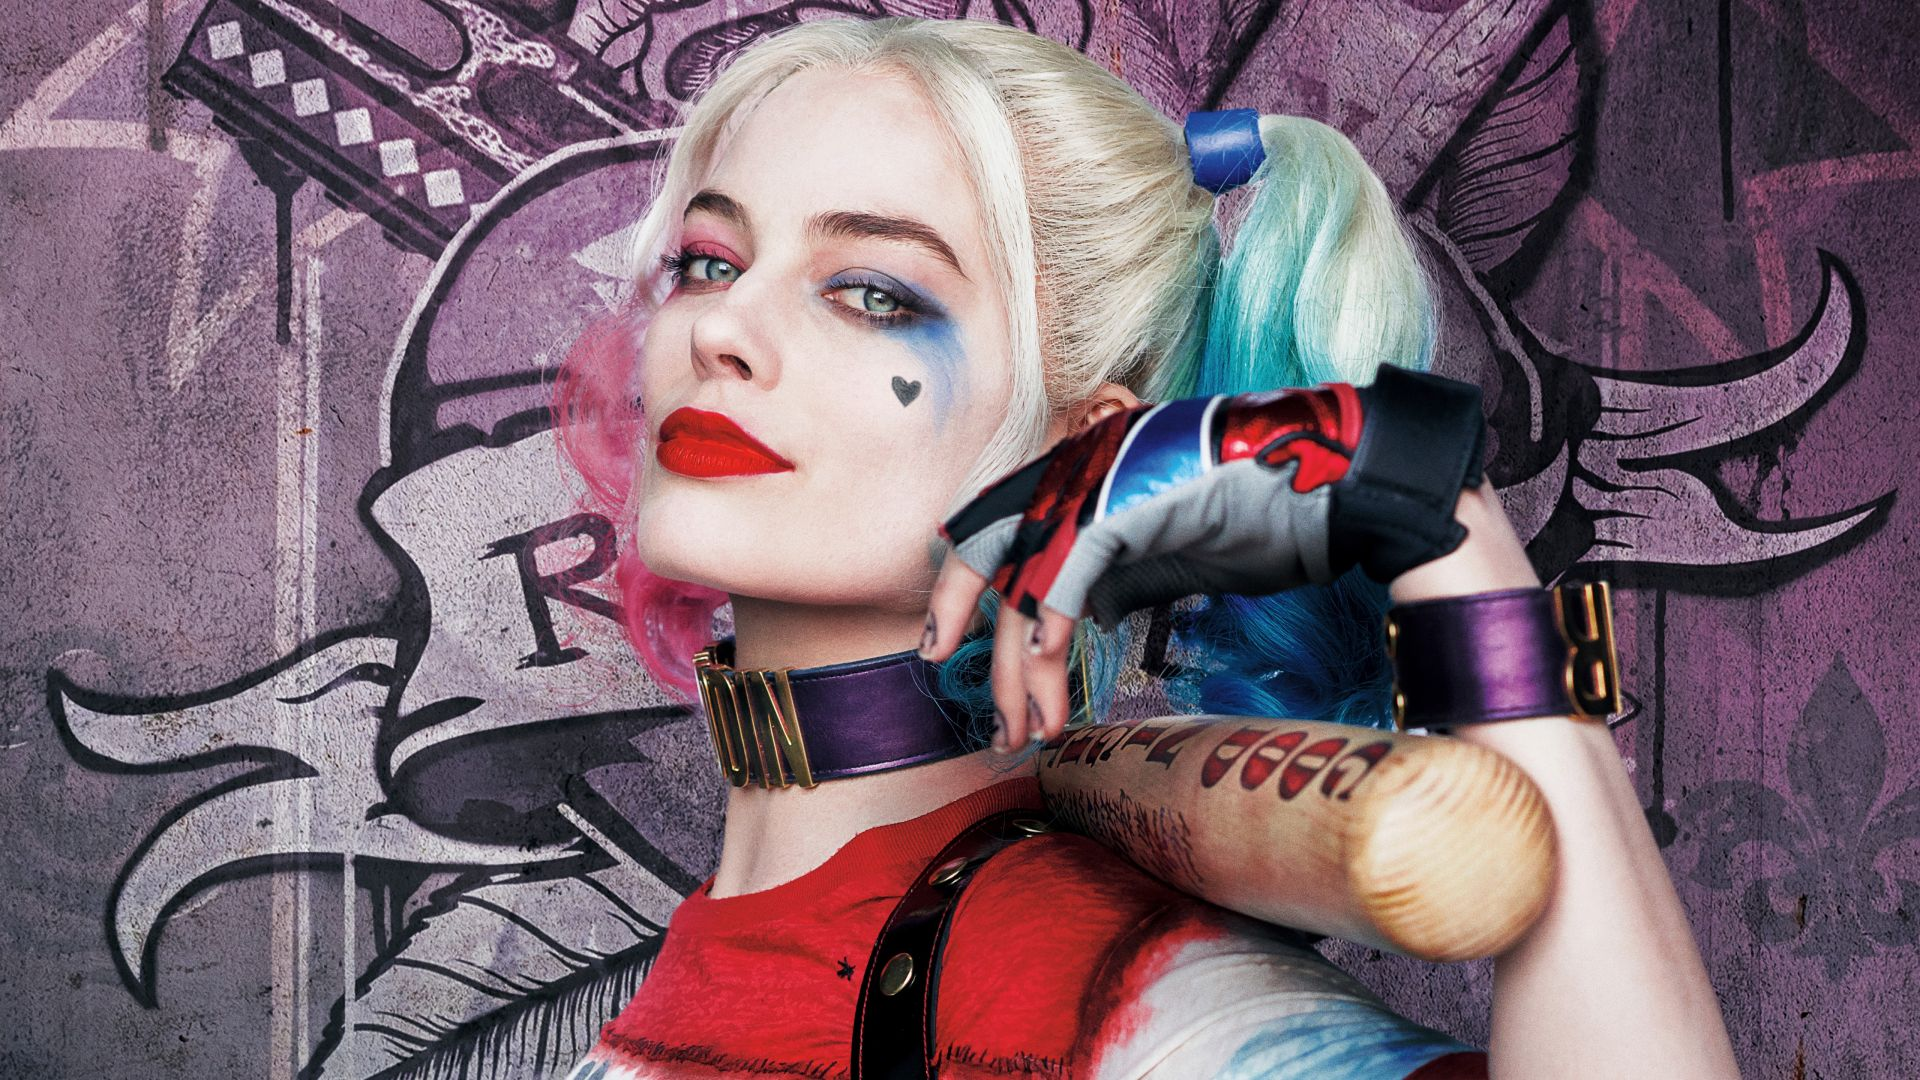 Suicide Squad Harley Quinn, Pic